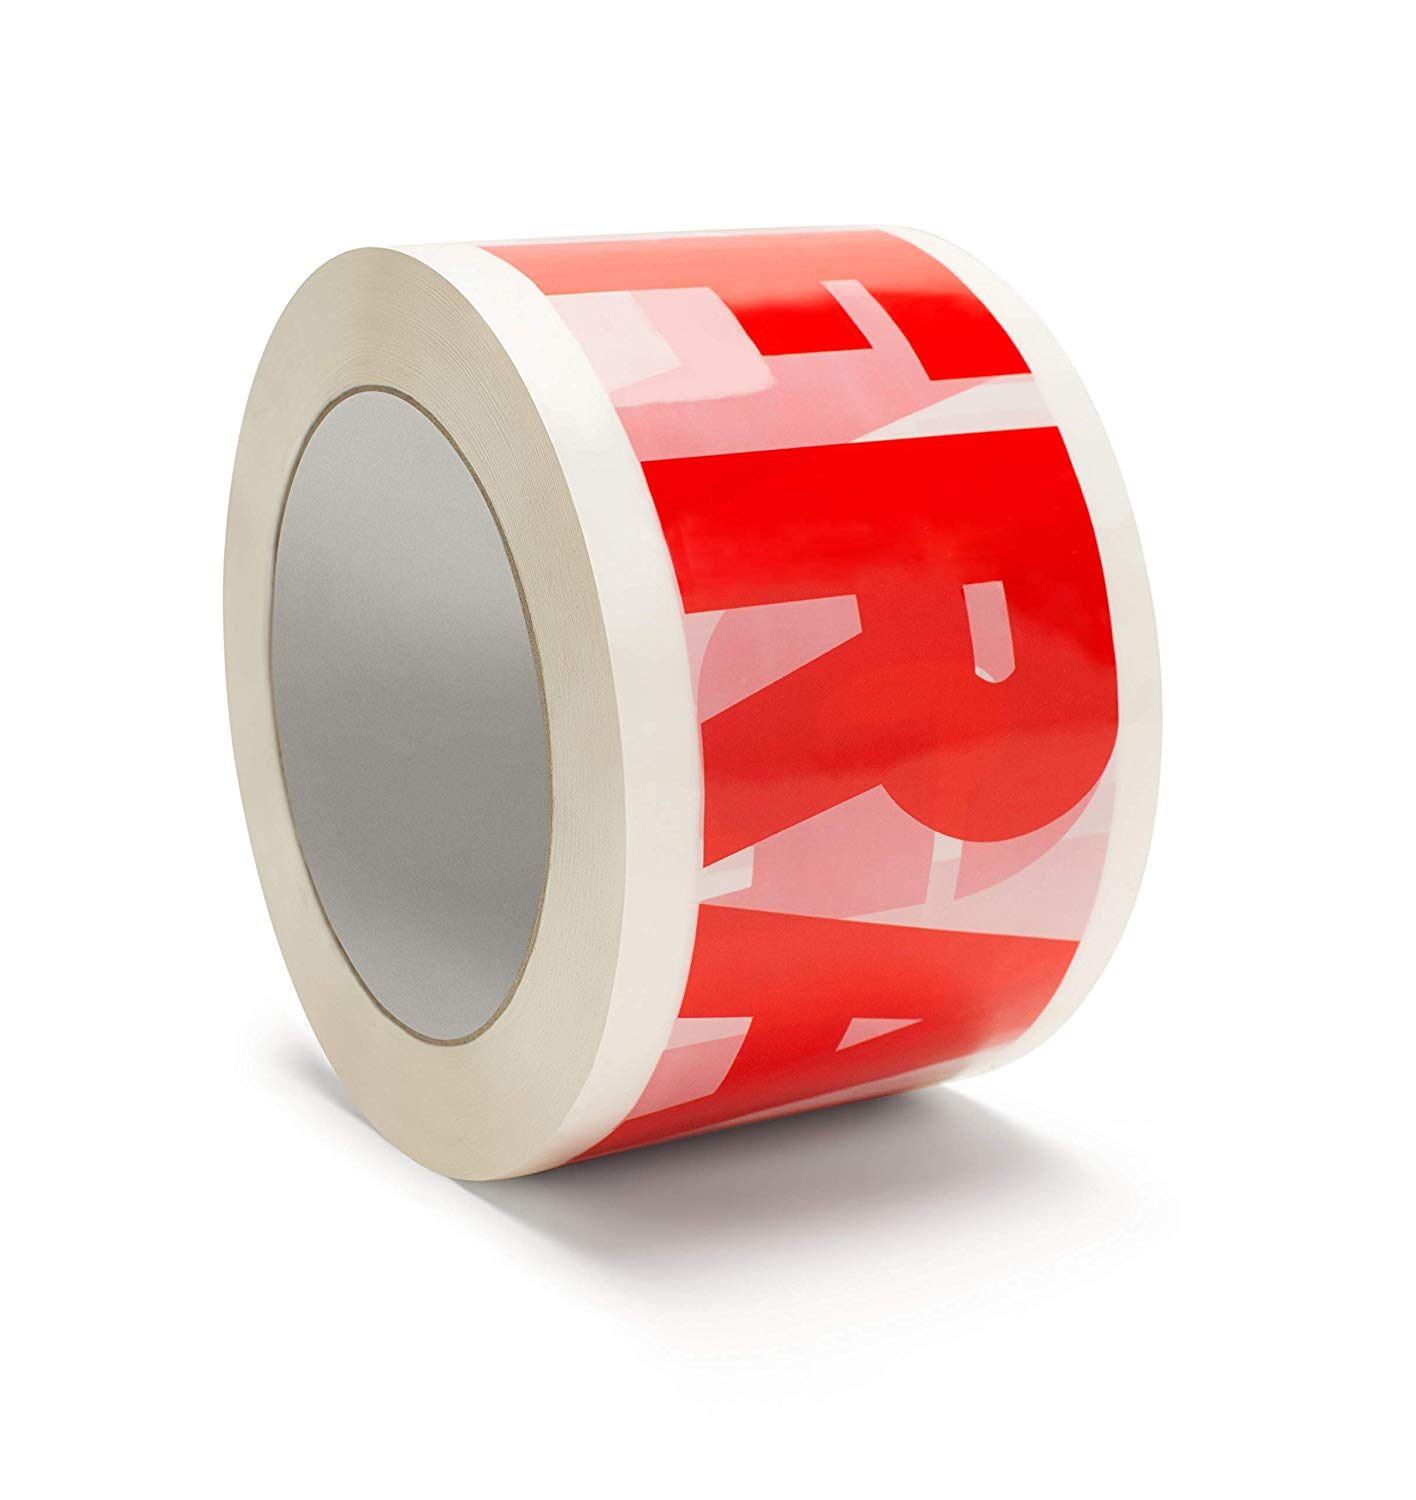 "Fragile Printed Tape, 3"" x 110 Yards Polypropylene White & Red Packing Tapes 2.0 Mil 48 Rolls"